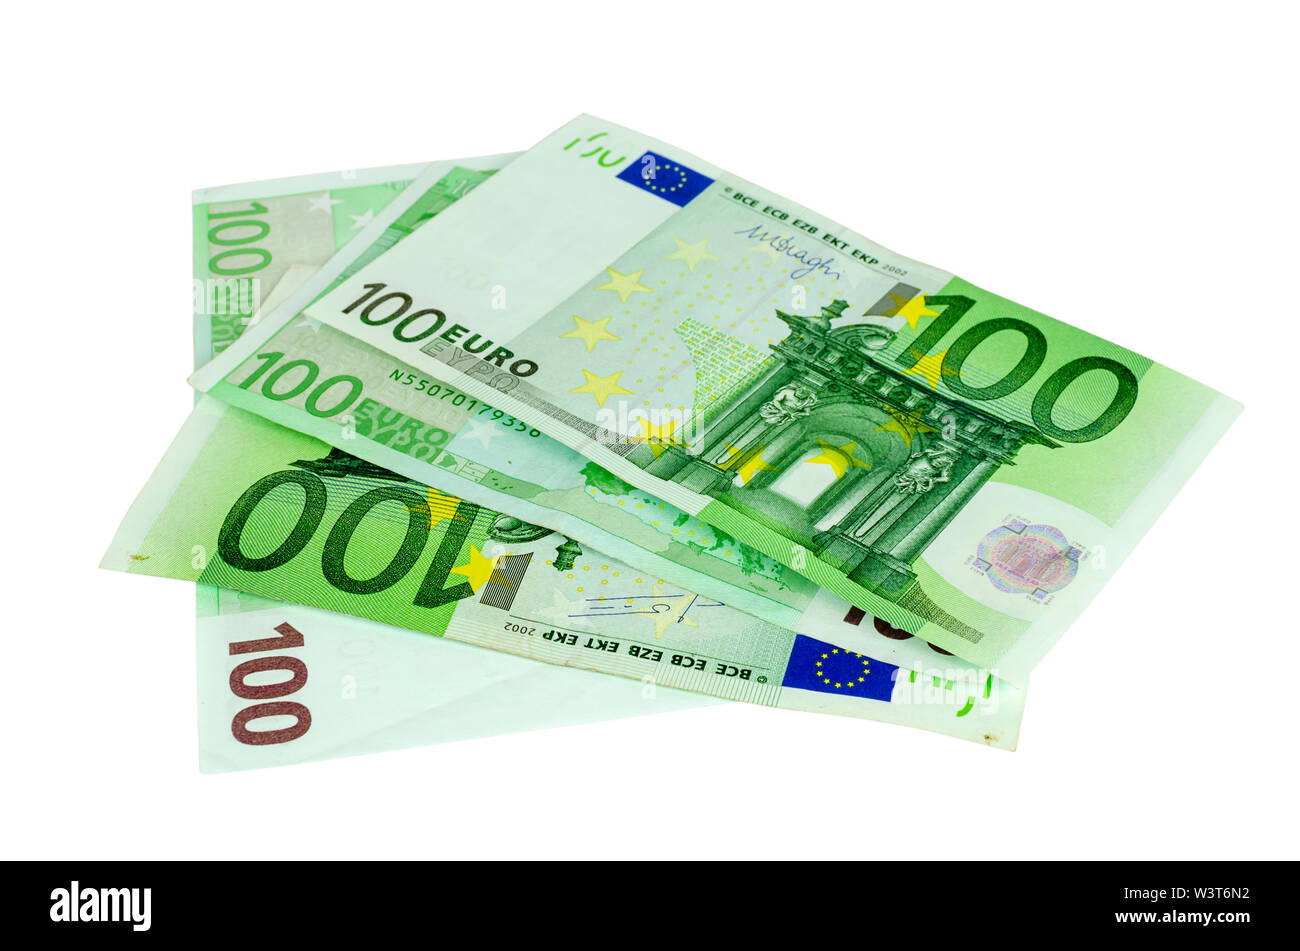 One hundred Euros banknotes isolated on a white background - Stock Image